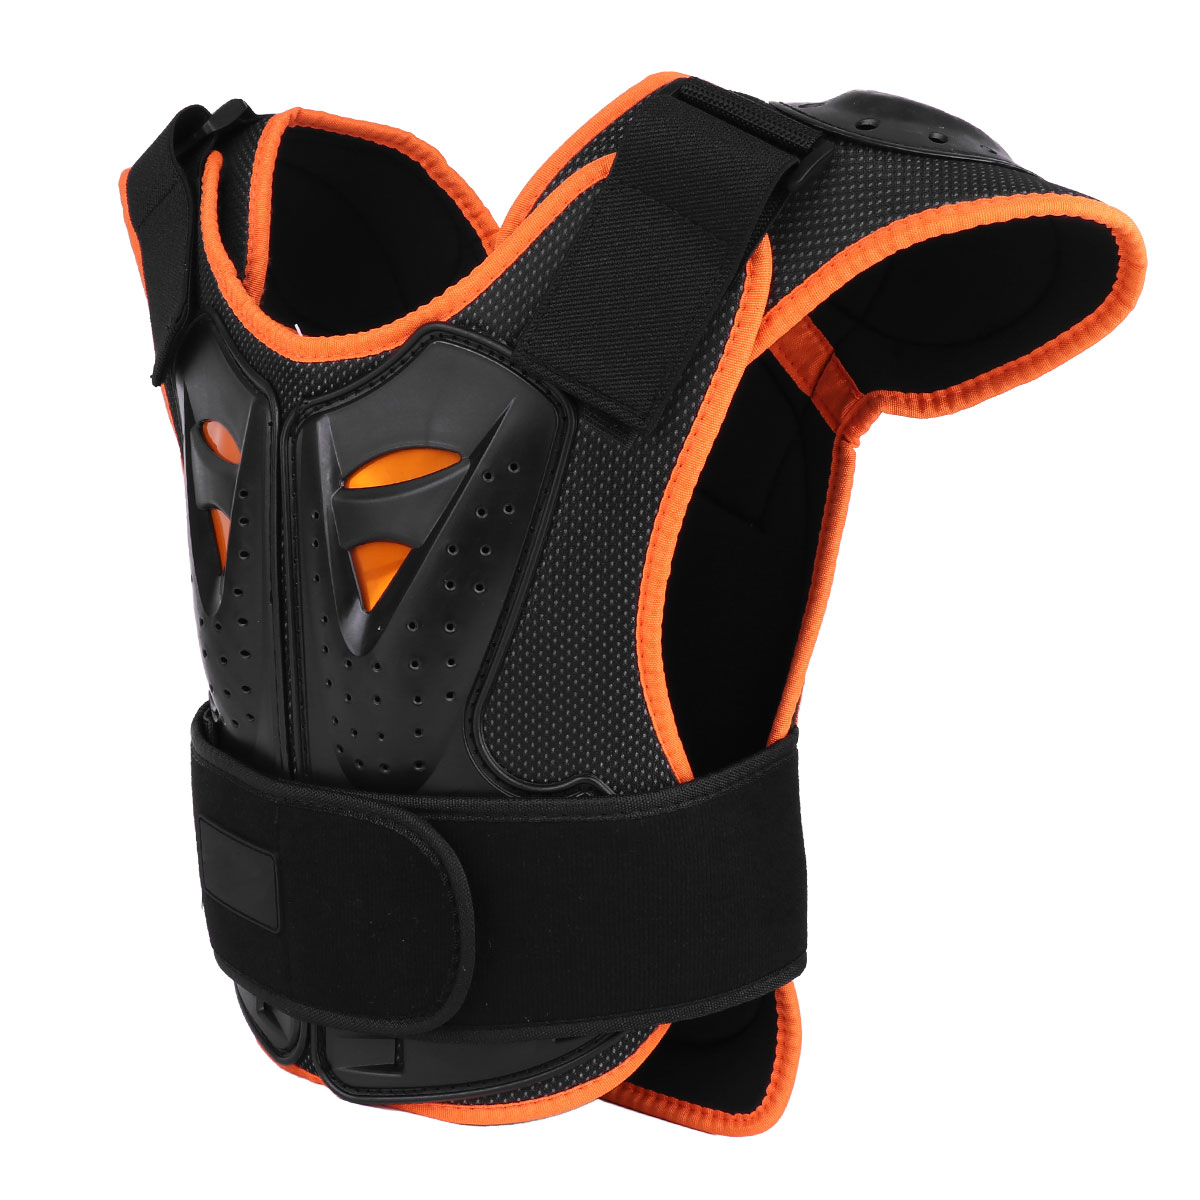 Back Support Sports Accessories Kid Child Vest Bicycle Body Chest Spine Protection Back Riding Bicycle Protector Gear Motocross Snowboarding Cycling Skiing Vest